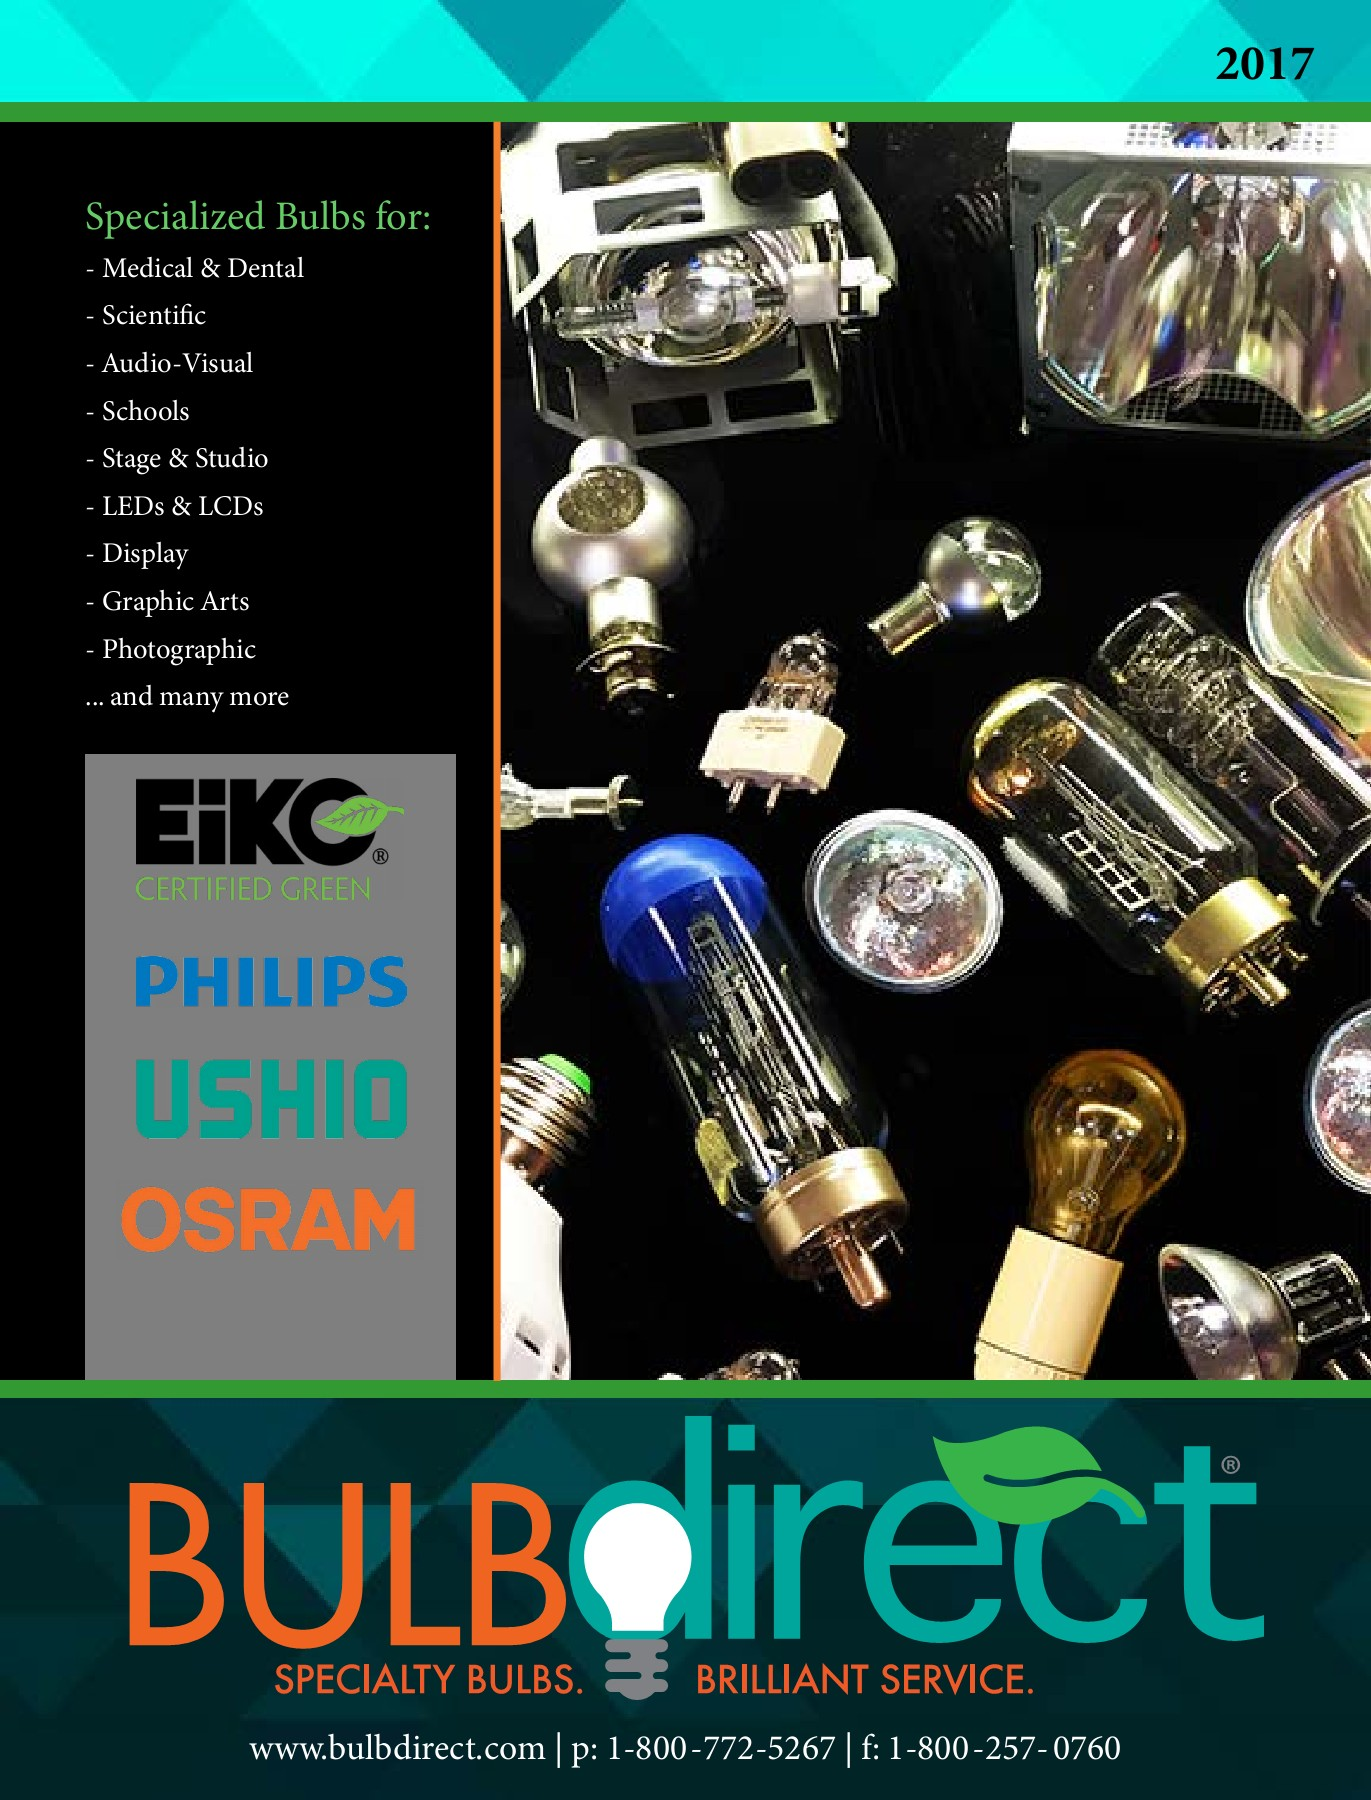 Replacement for Photogenic Pl-70-a Flashtube Light Bulb by Technical Precision